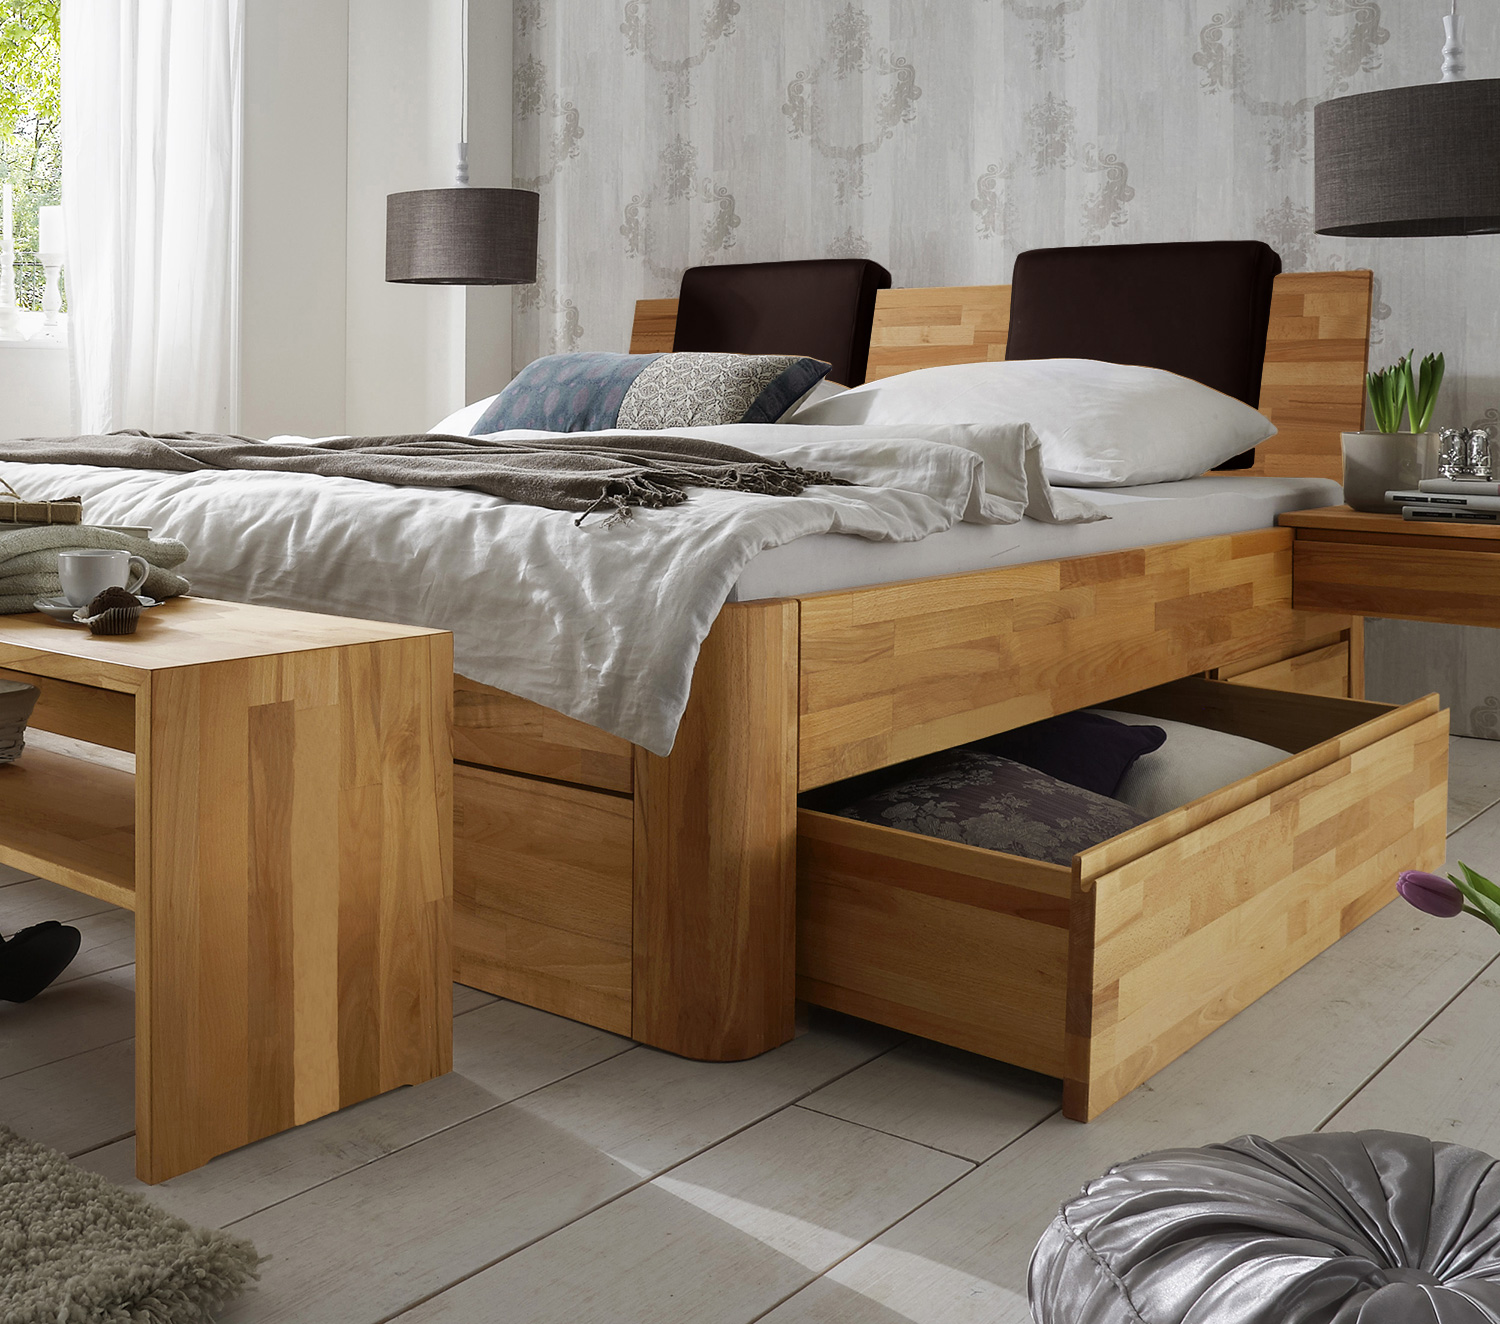 massivholz doppelbett mit bettkasten zarbo. Black Bedroom Furniture Sets. Home Design Ideas